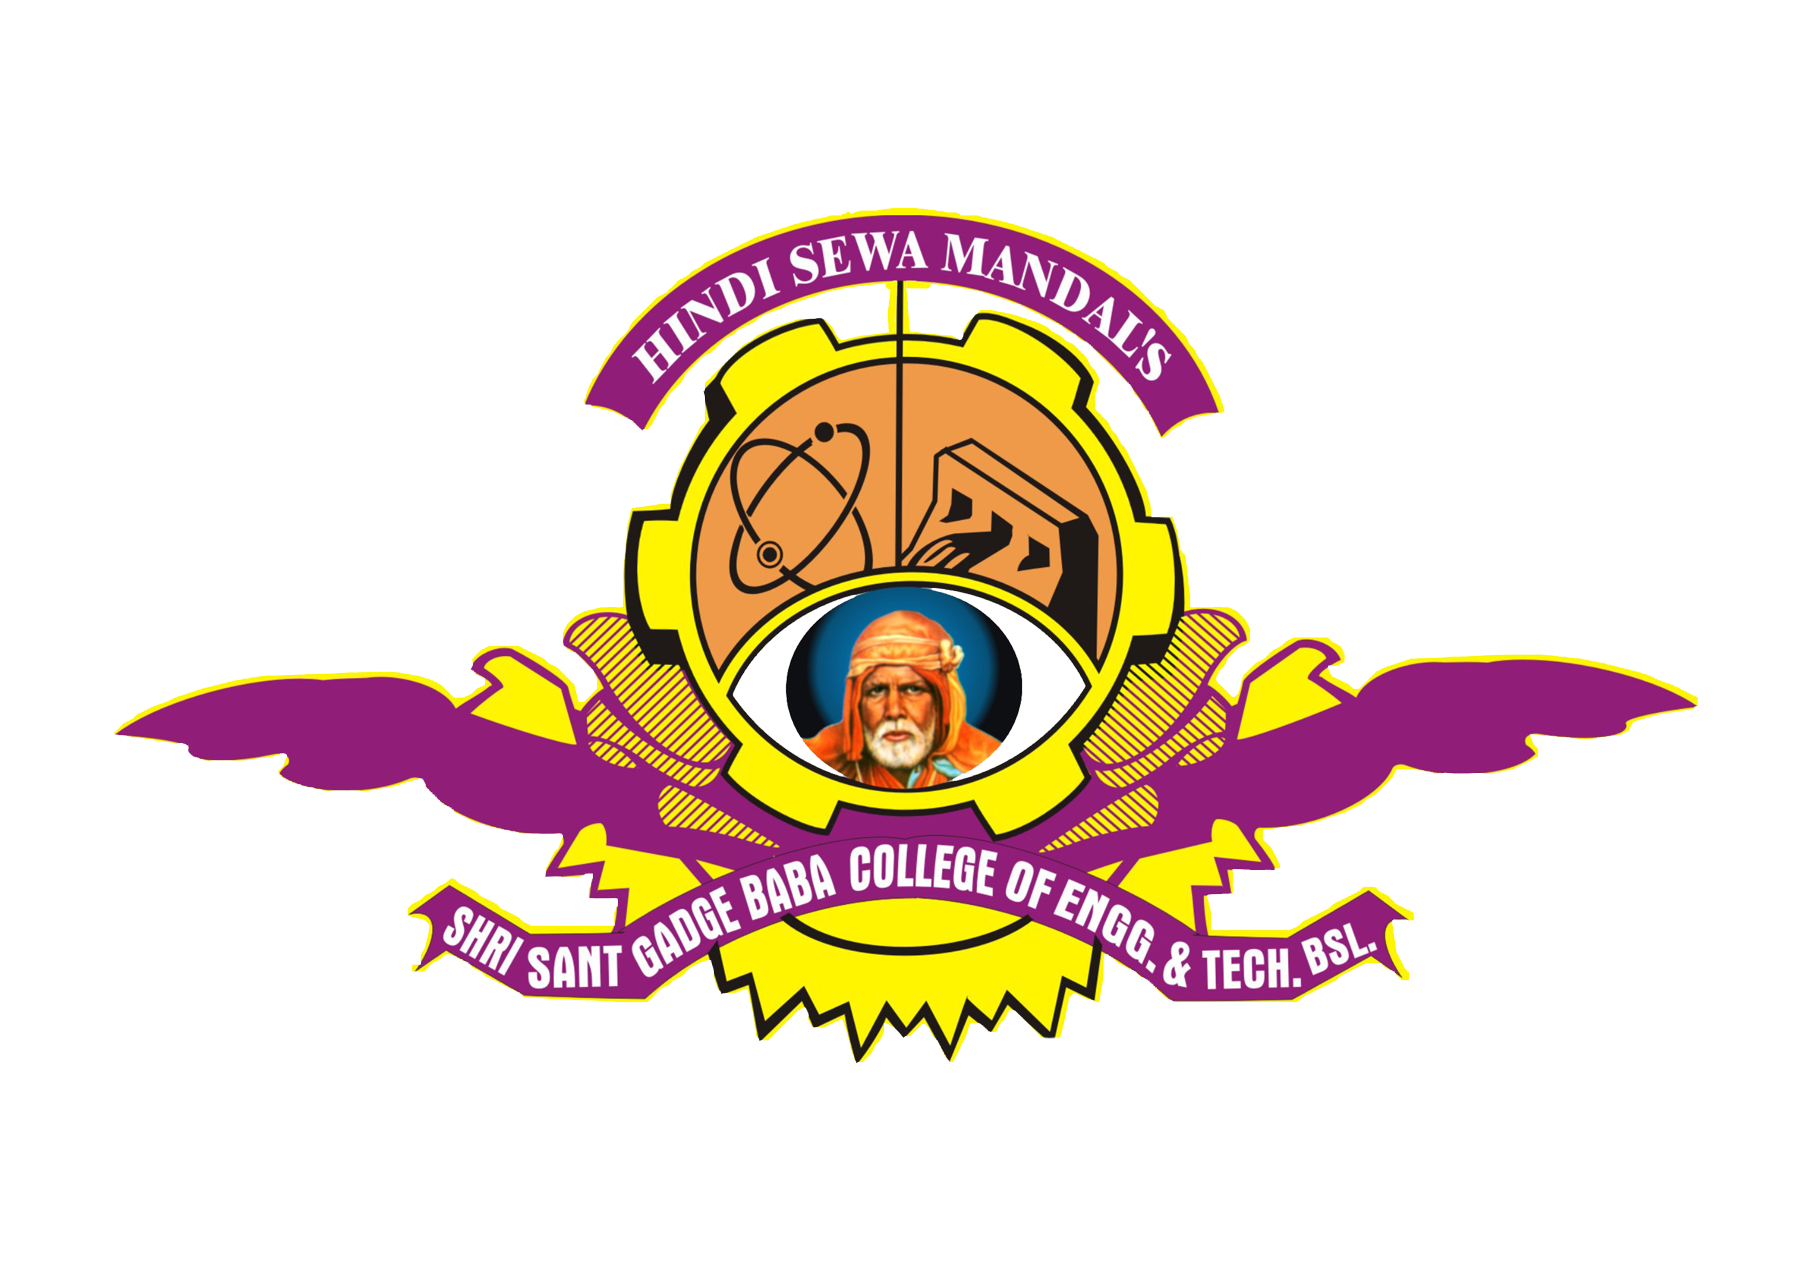 Hindi Seva Mandal's Shri Sant Gadgebaba College of Engineering & Technology, Bhusawal